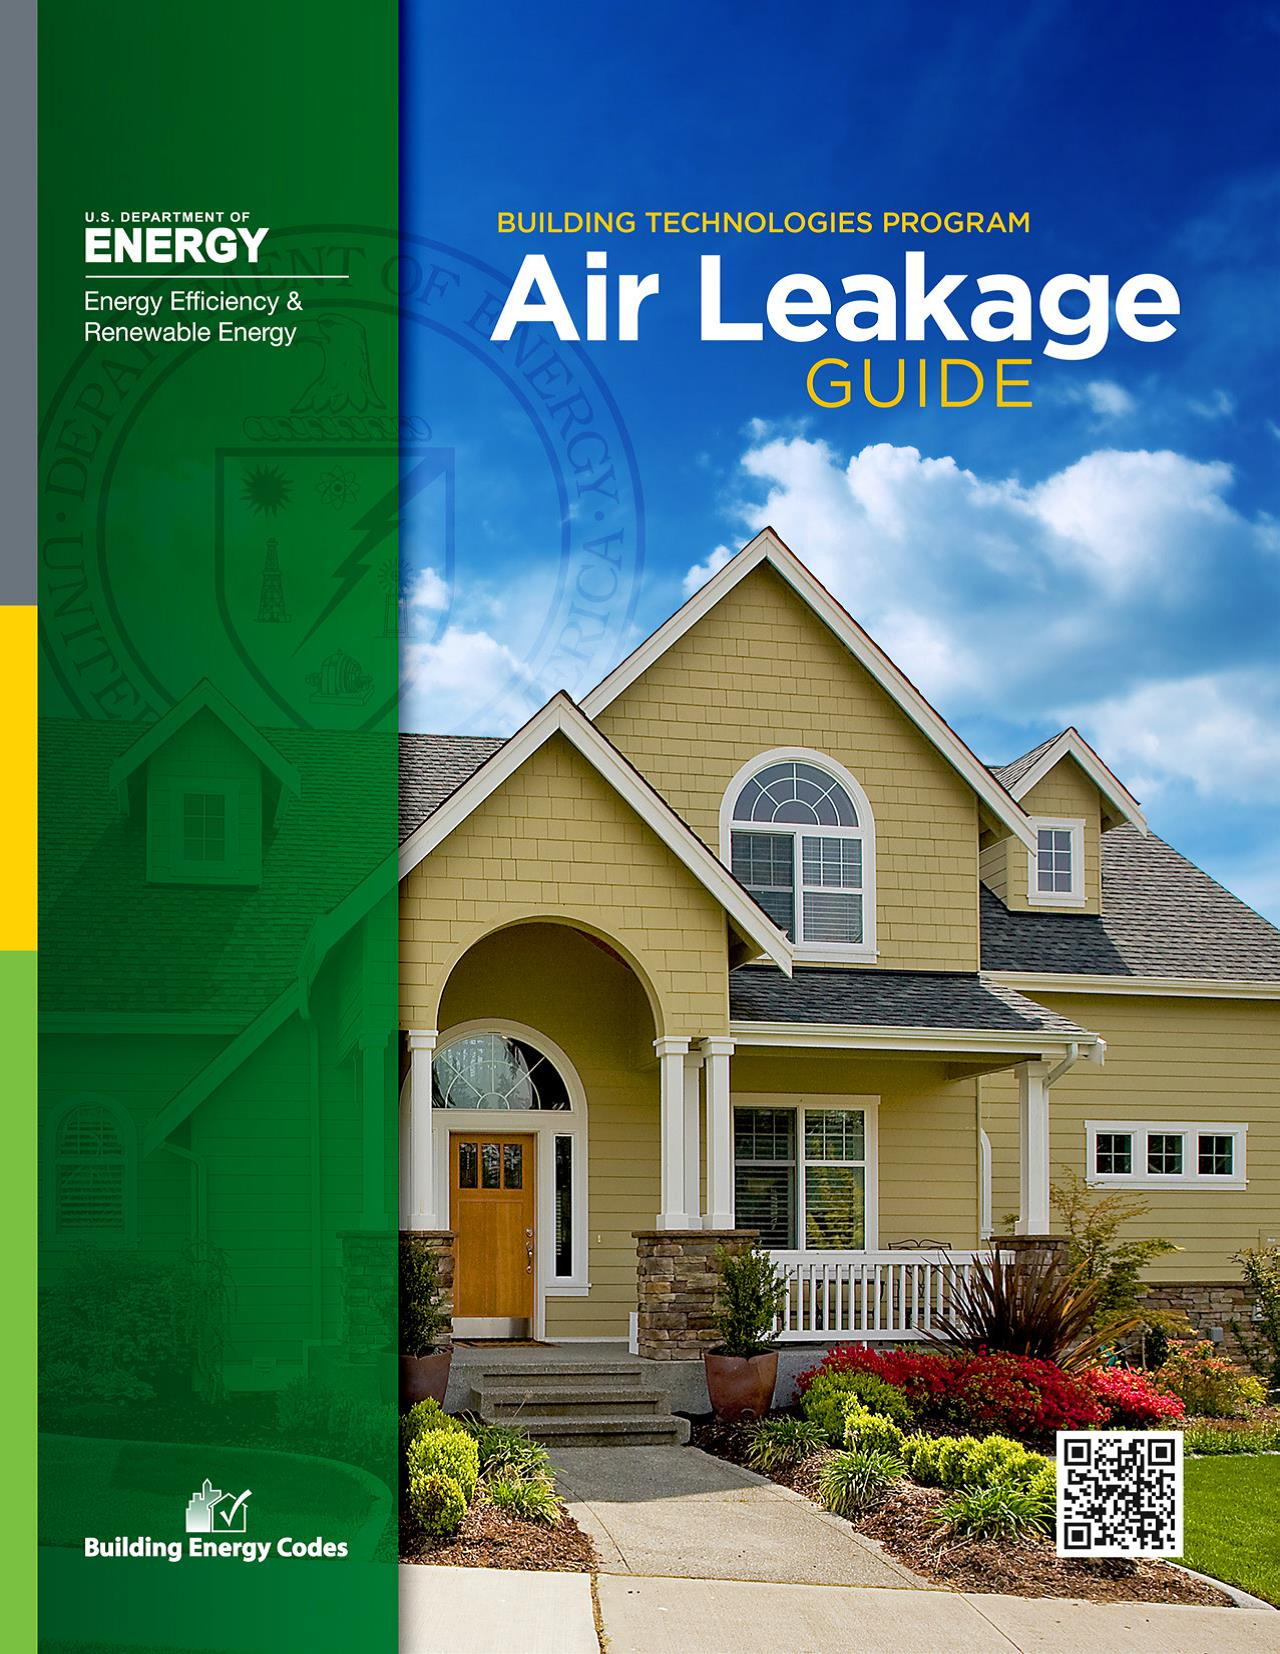 Air Leakage Guide